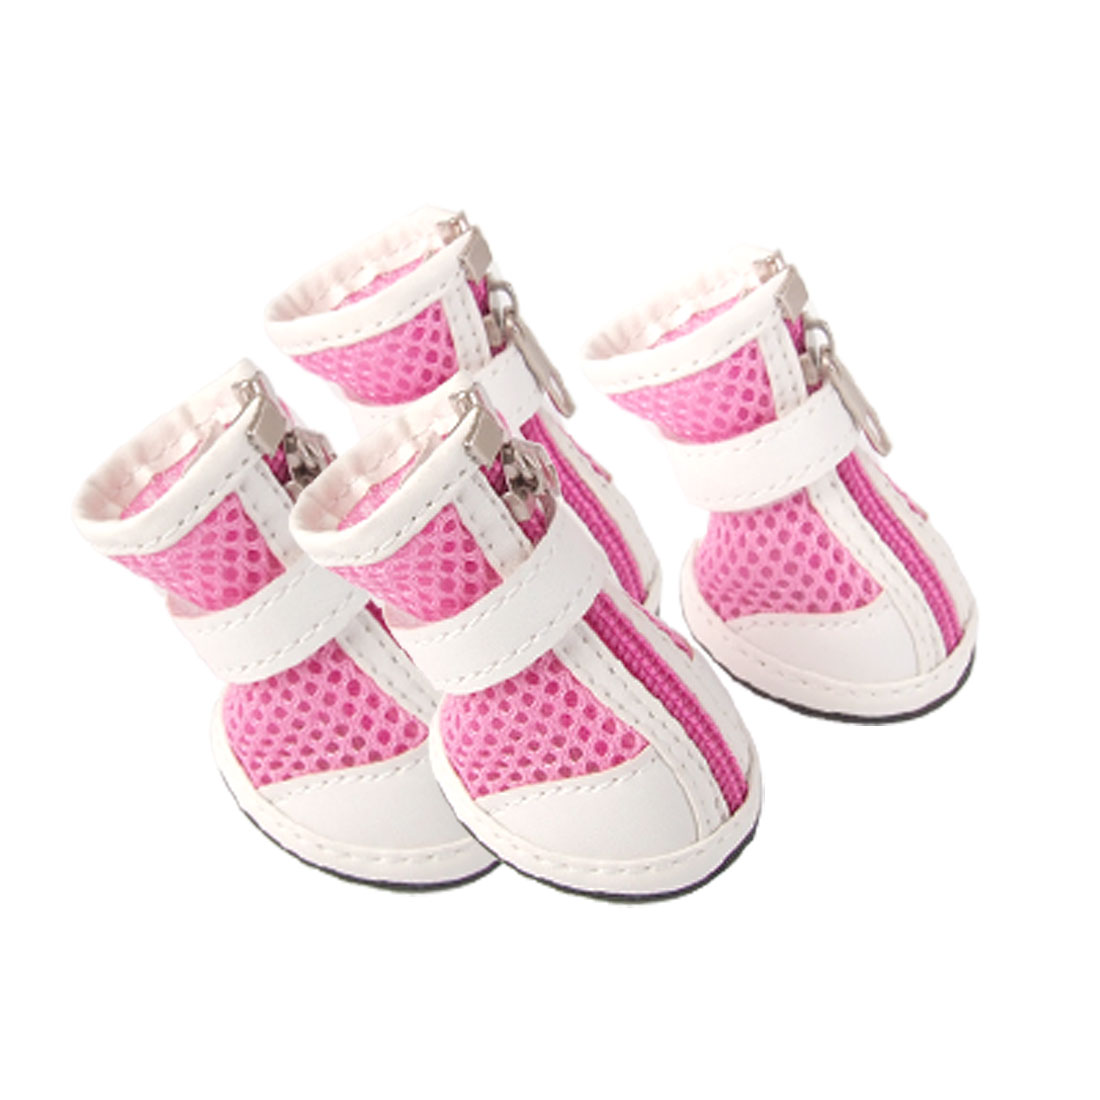 Breathable Mesh Pet Puppy Dog Shoes Boots Pink White Size 2